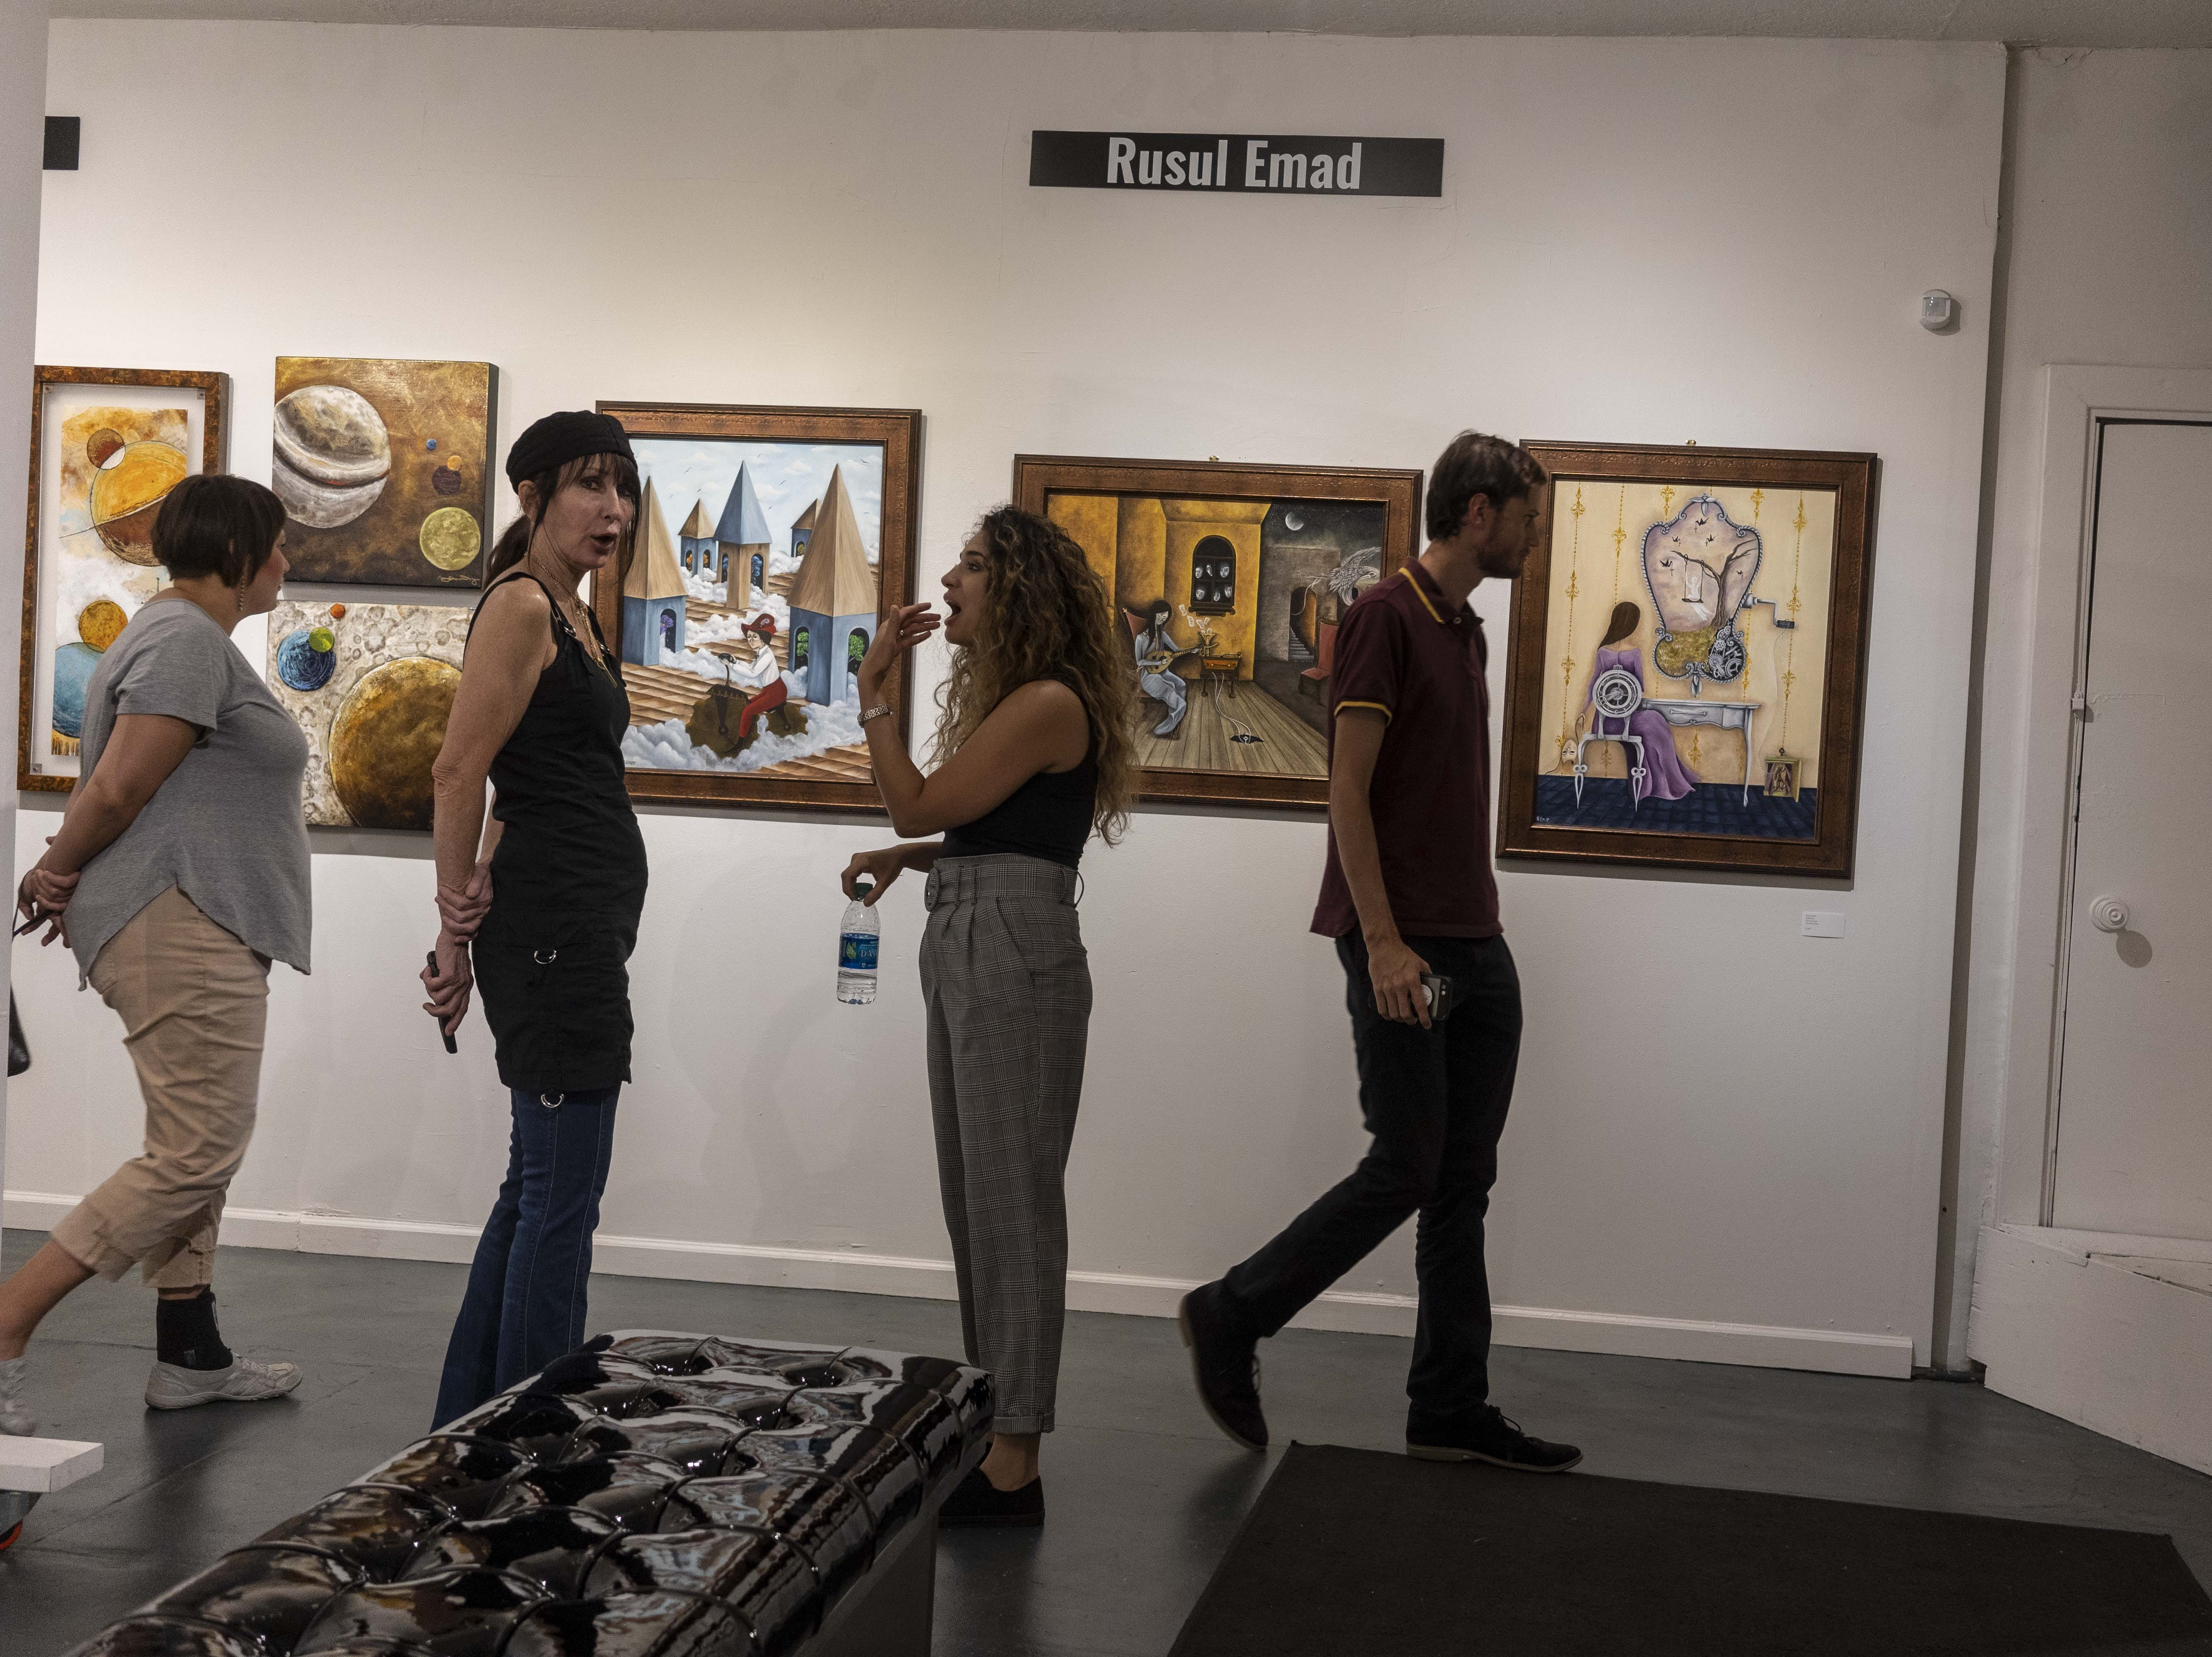 People observe exhibits at 9th Art gallery on Grand Ave during the First Friday Art walk in Downtown Phoenix, on Oct. 5, 2018.